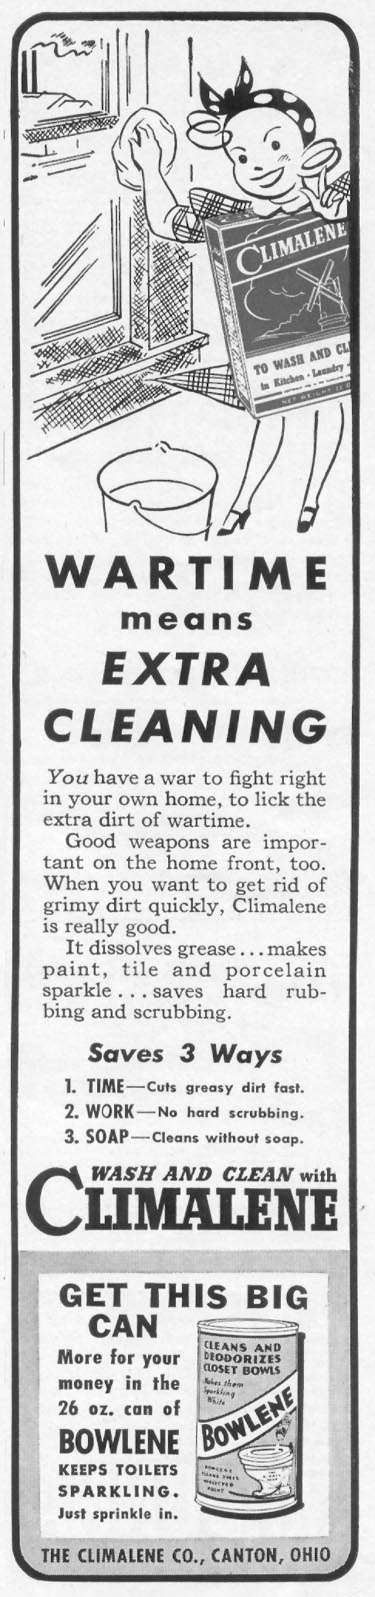 CLIMALENE HOUSEHOLD CLEANSER